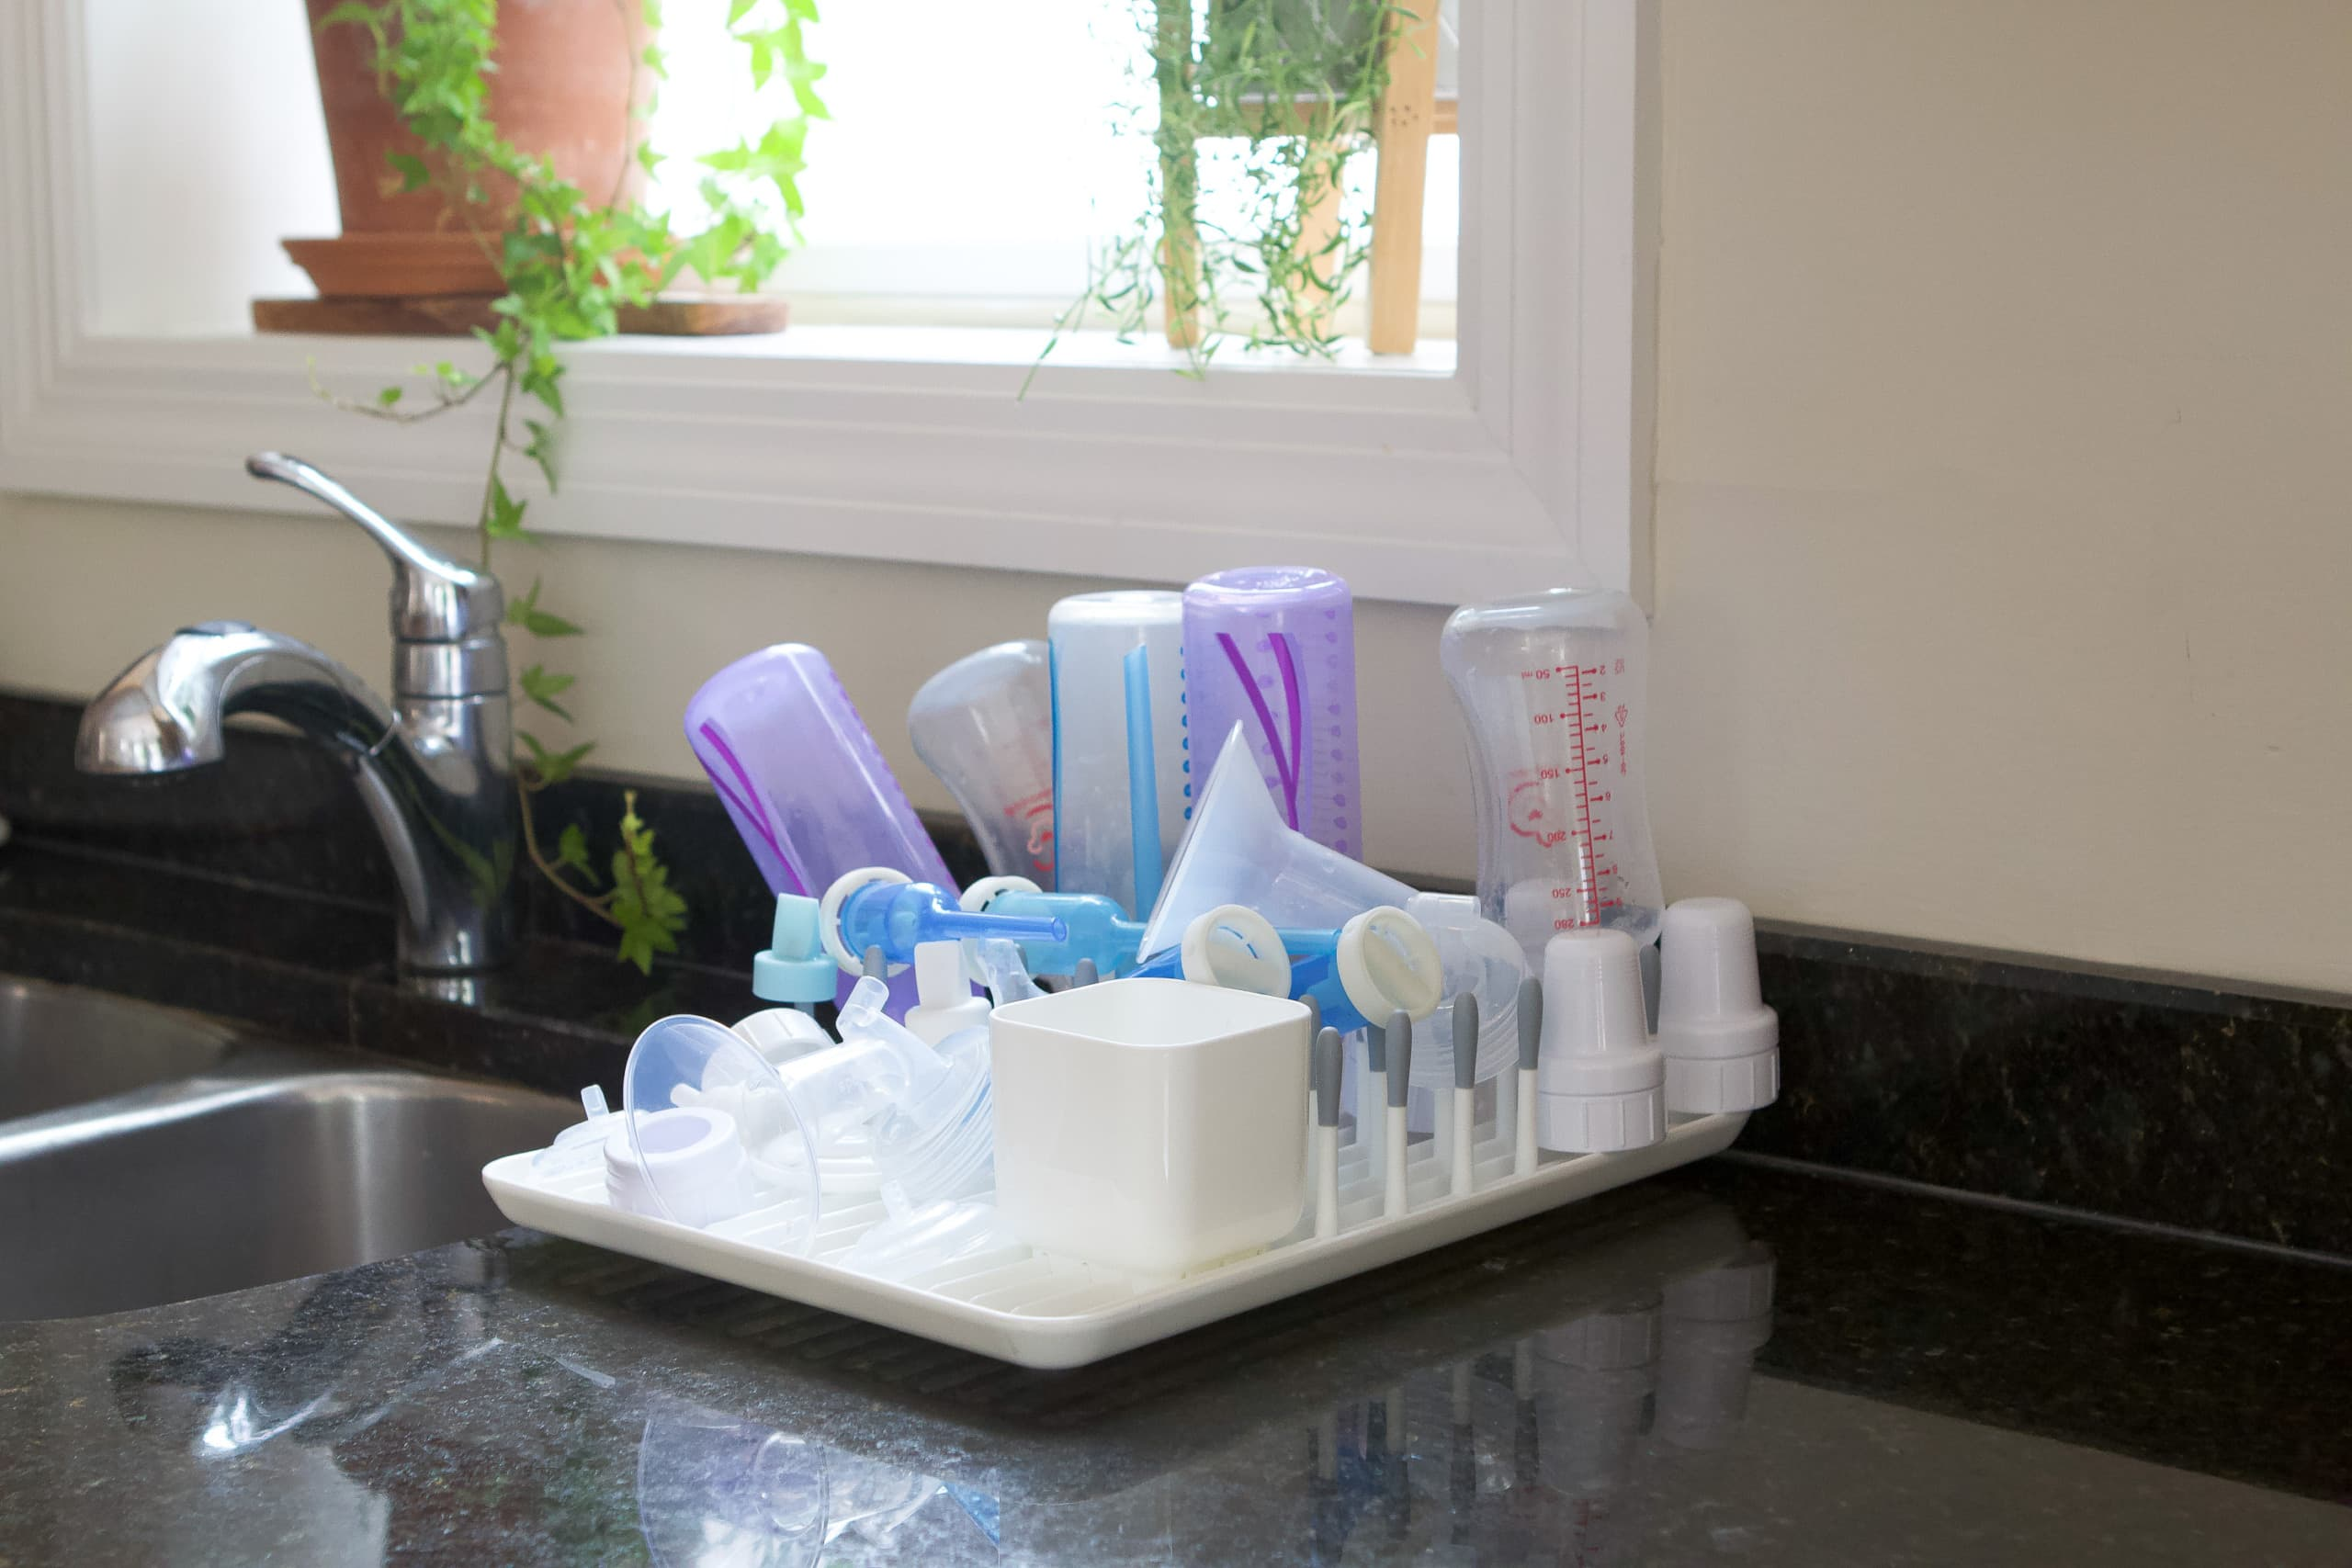 Drying rack in the kitchen for baby bottles